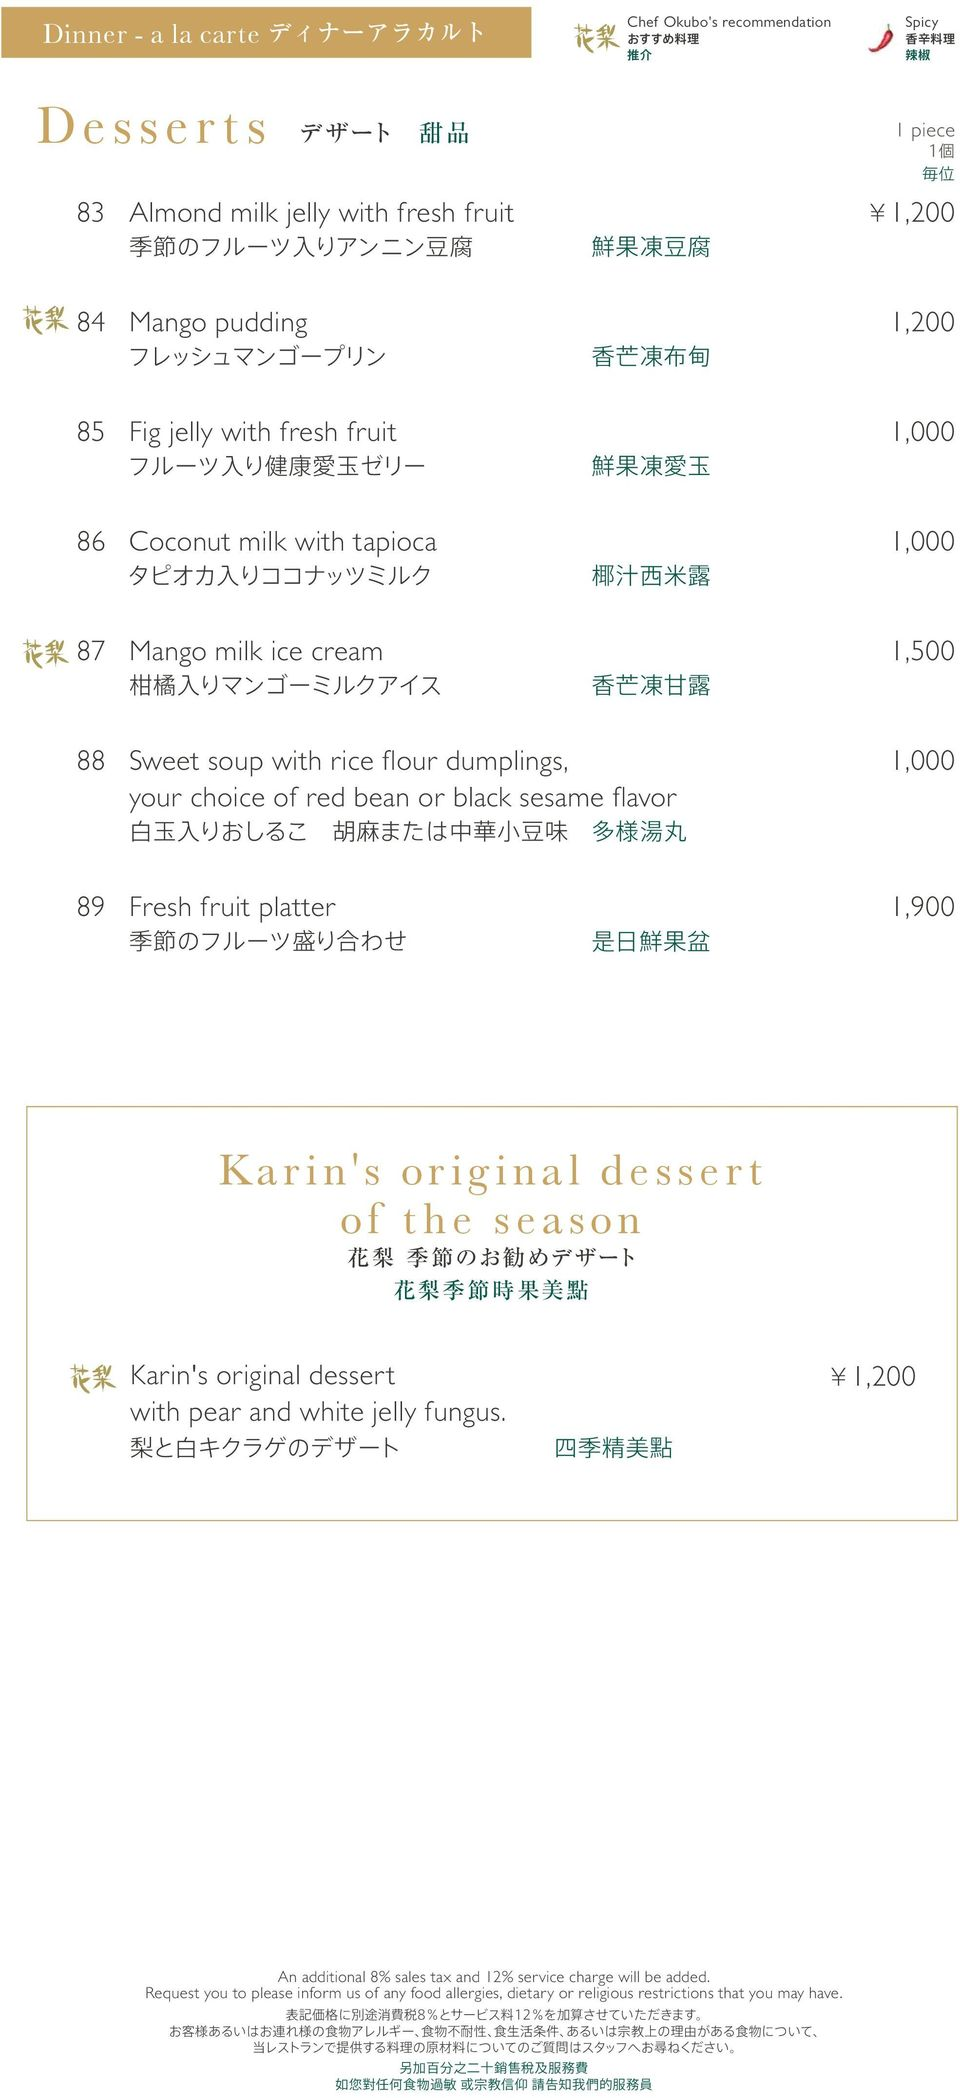 cream 1,500 88 Sweet soup with rice flour dumplings, your choice of red bean or black sesame flavor 1,000 89 Fresh